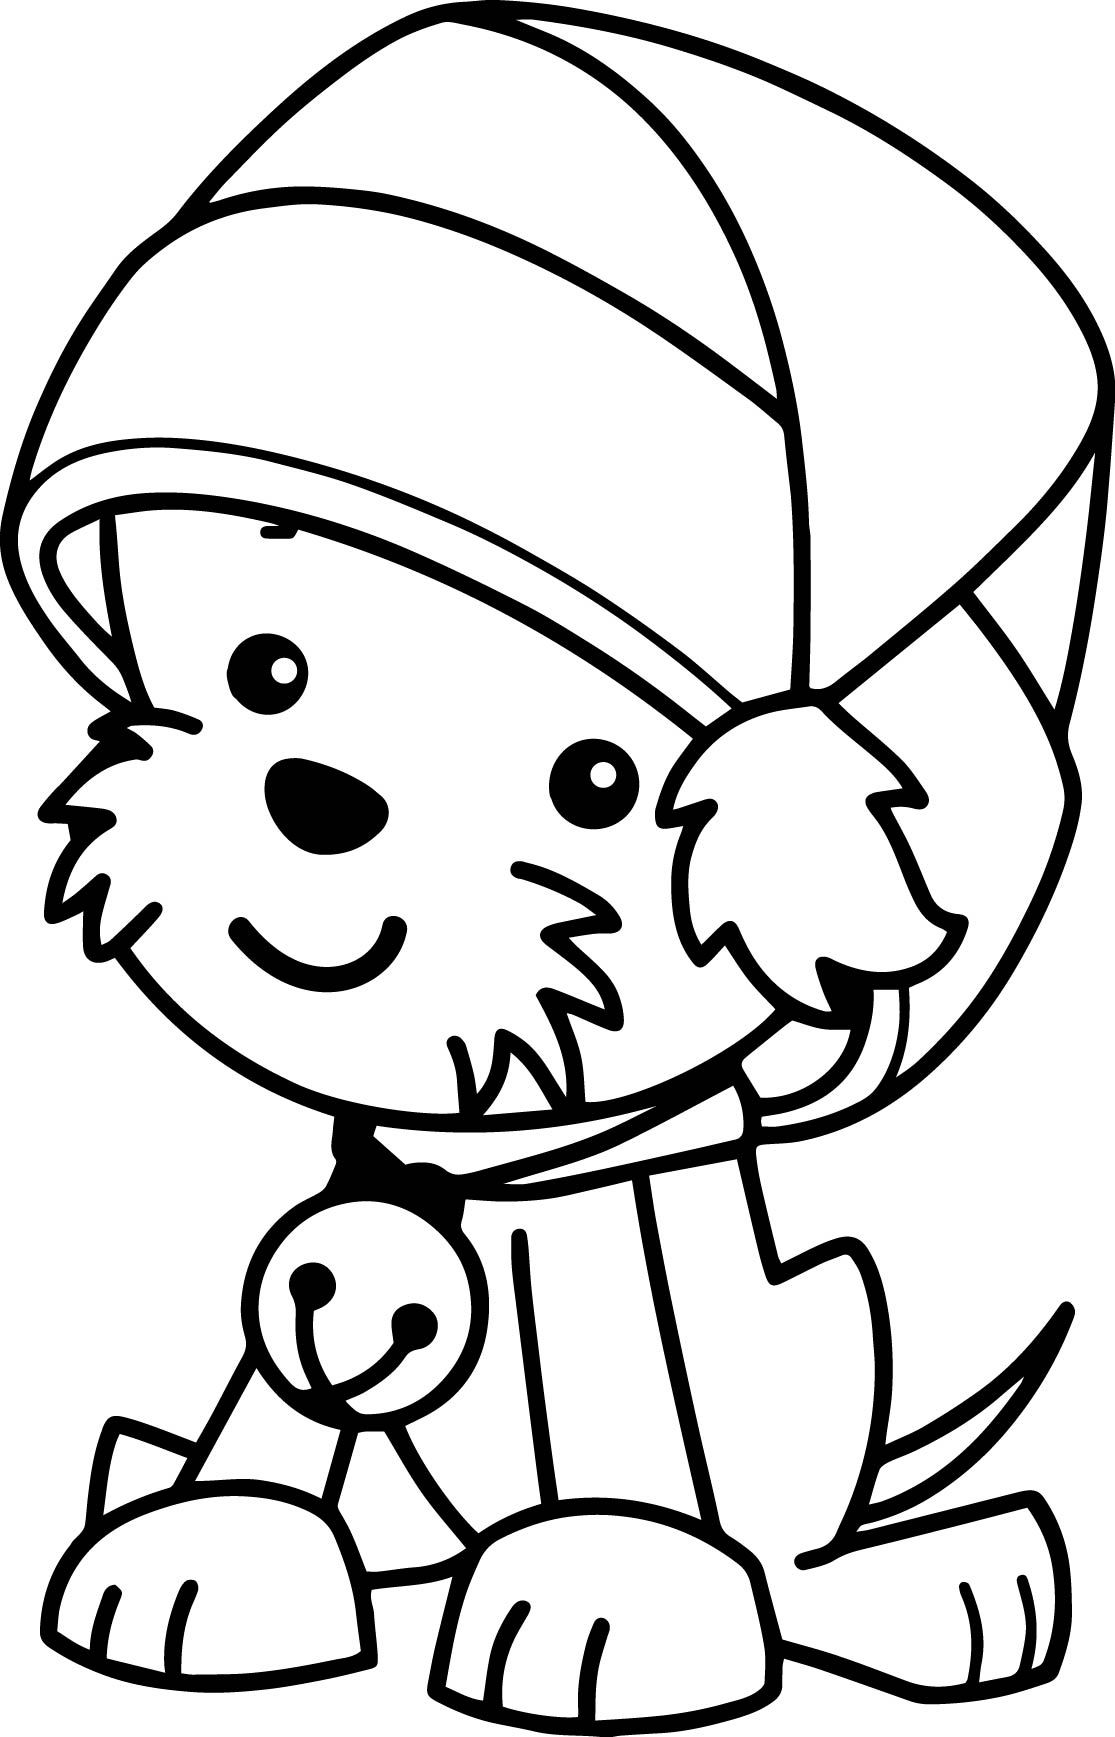 Cool Christmas Santa Claus Hat Cute Dog Coloring Page Dog Coloring Page Santa Coloring Pages Cat Coloring Page